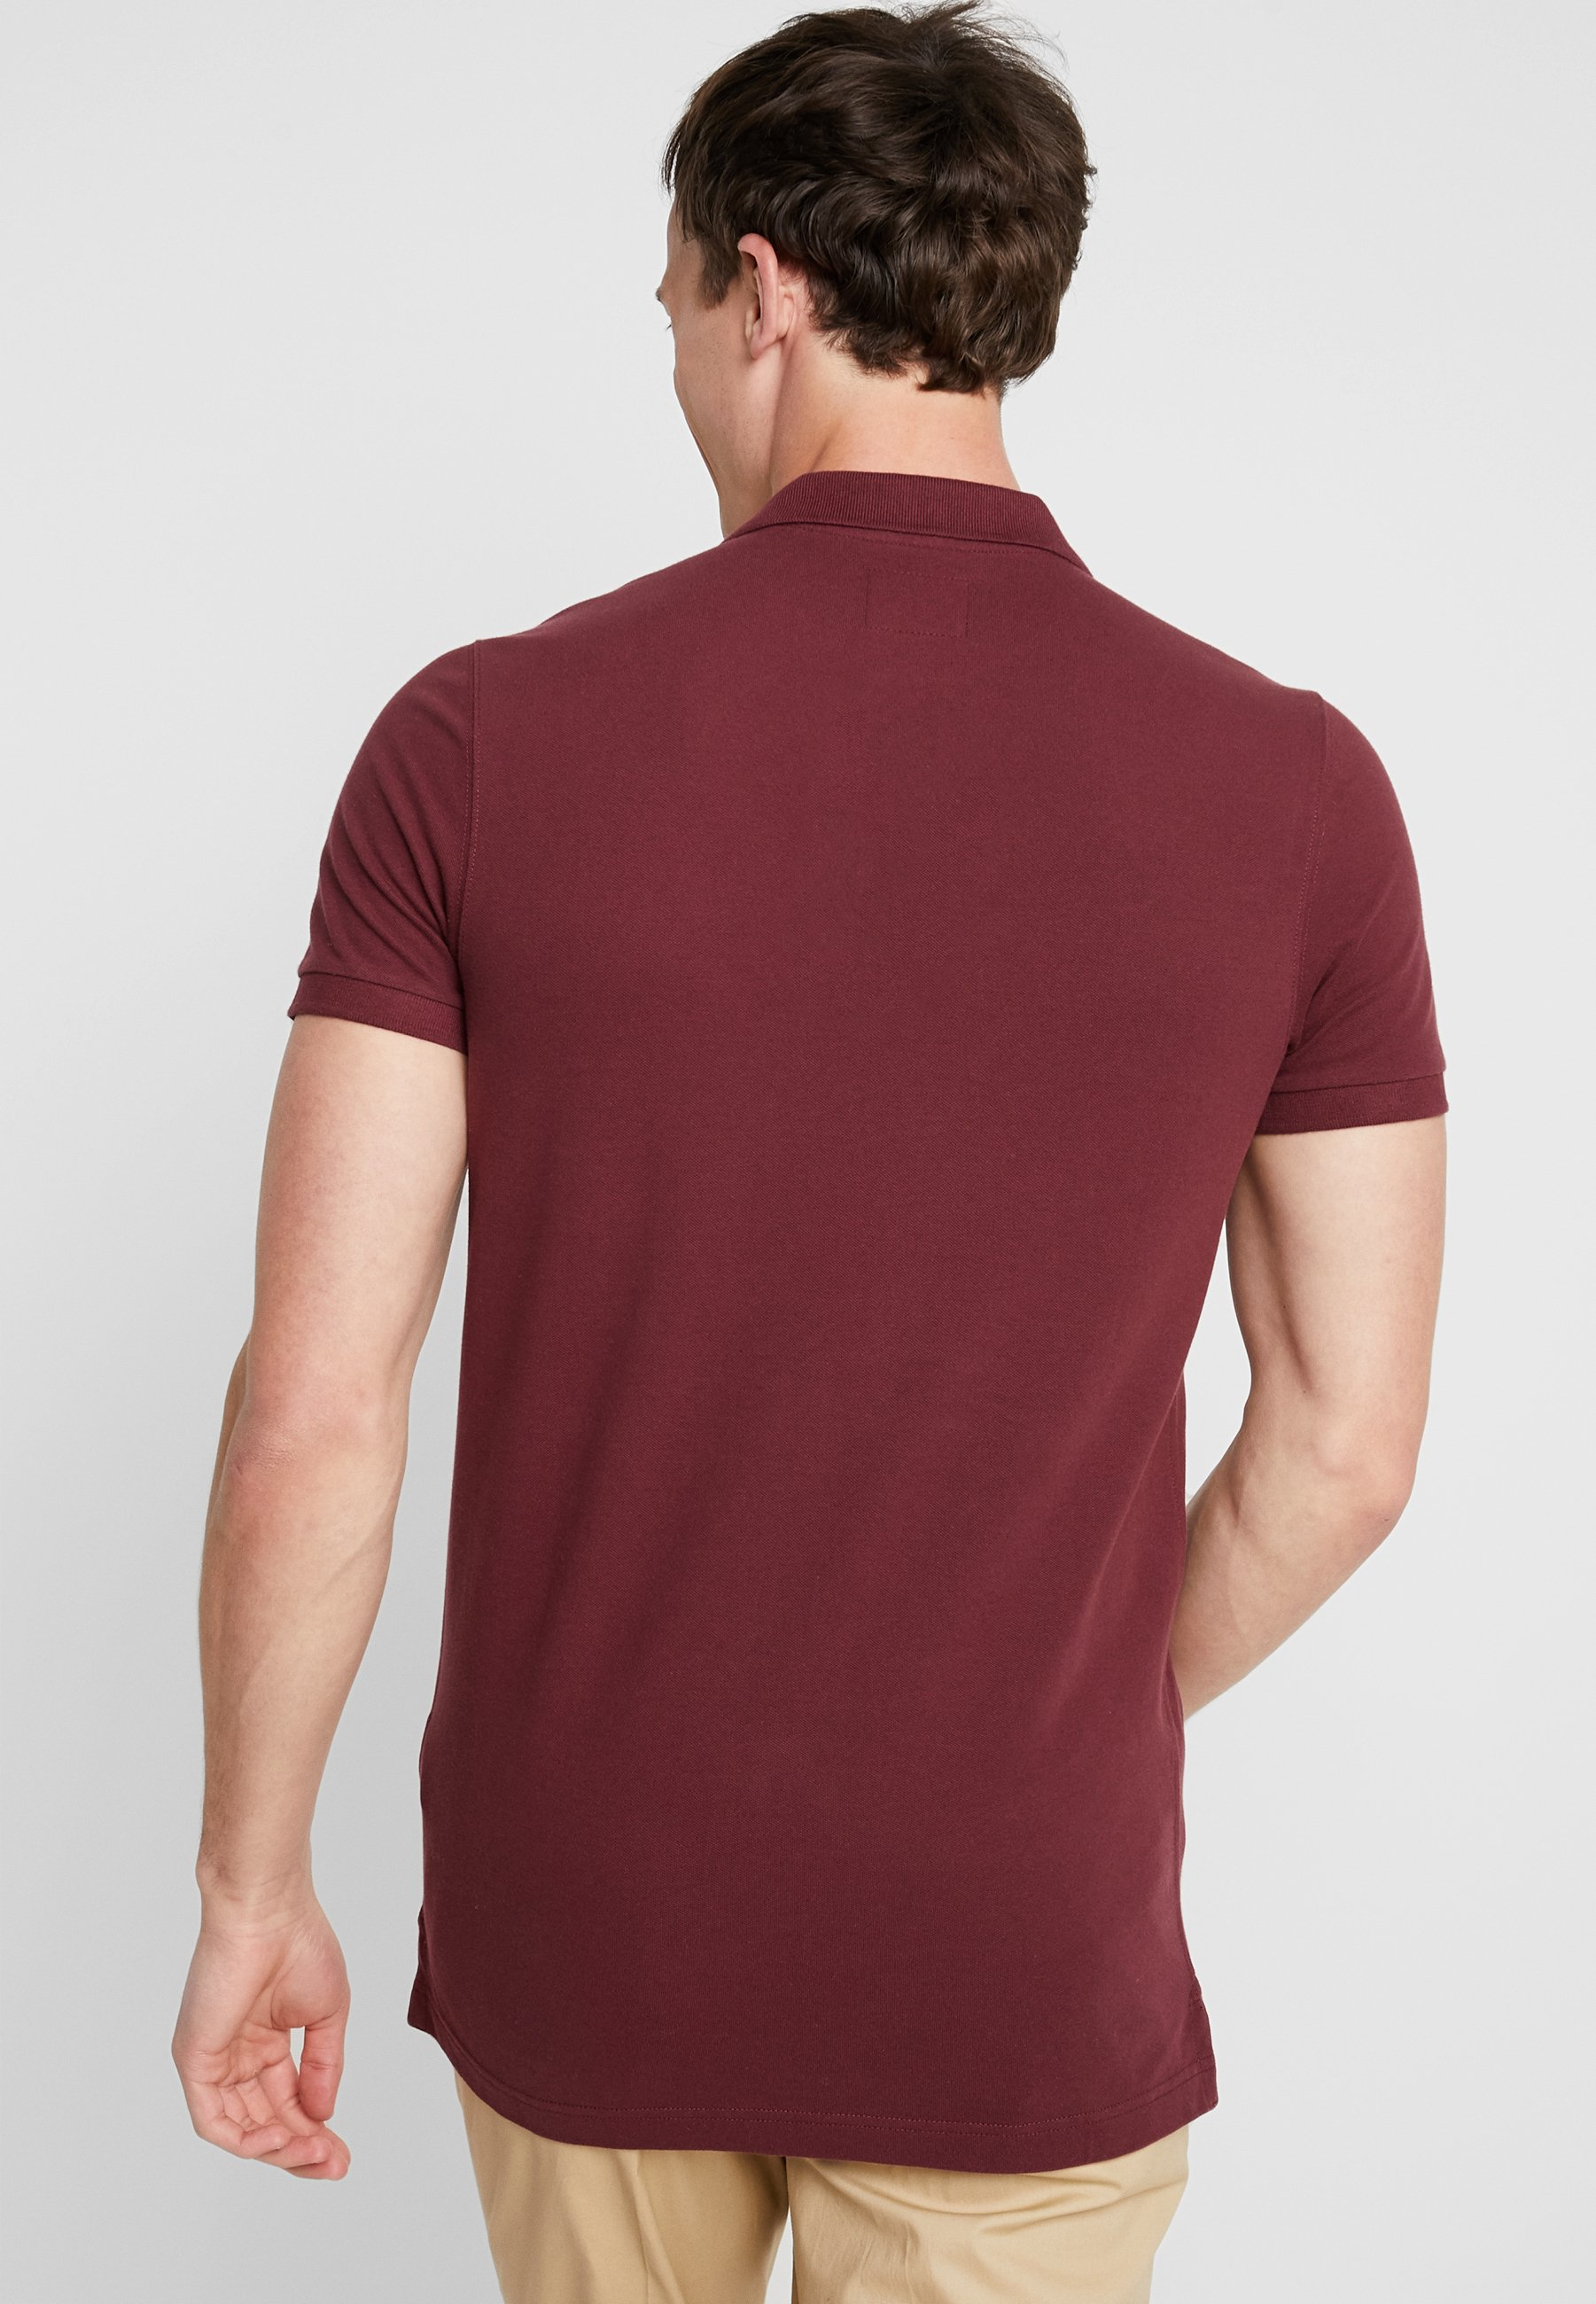 Abercrombieamp; Fitch PoloBordeaux Fitch Fitch Abercrombieamp; Abercrombieamp; PoloBordeaux PoloBordeaux 80wXNknOPZ